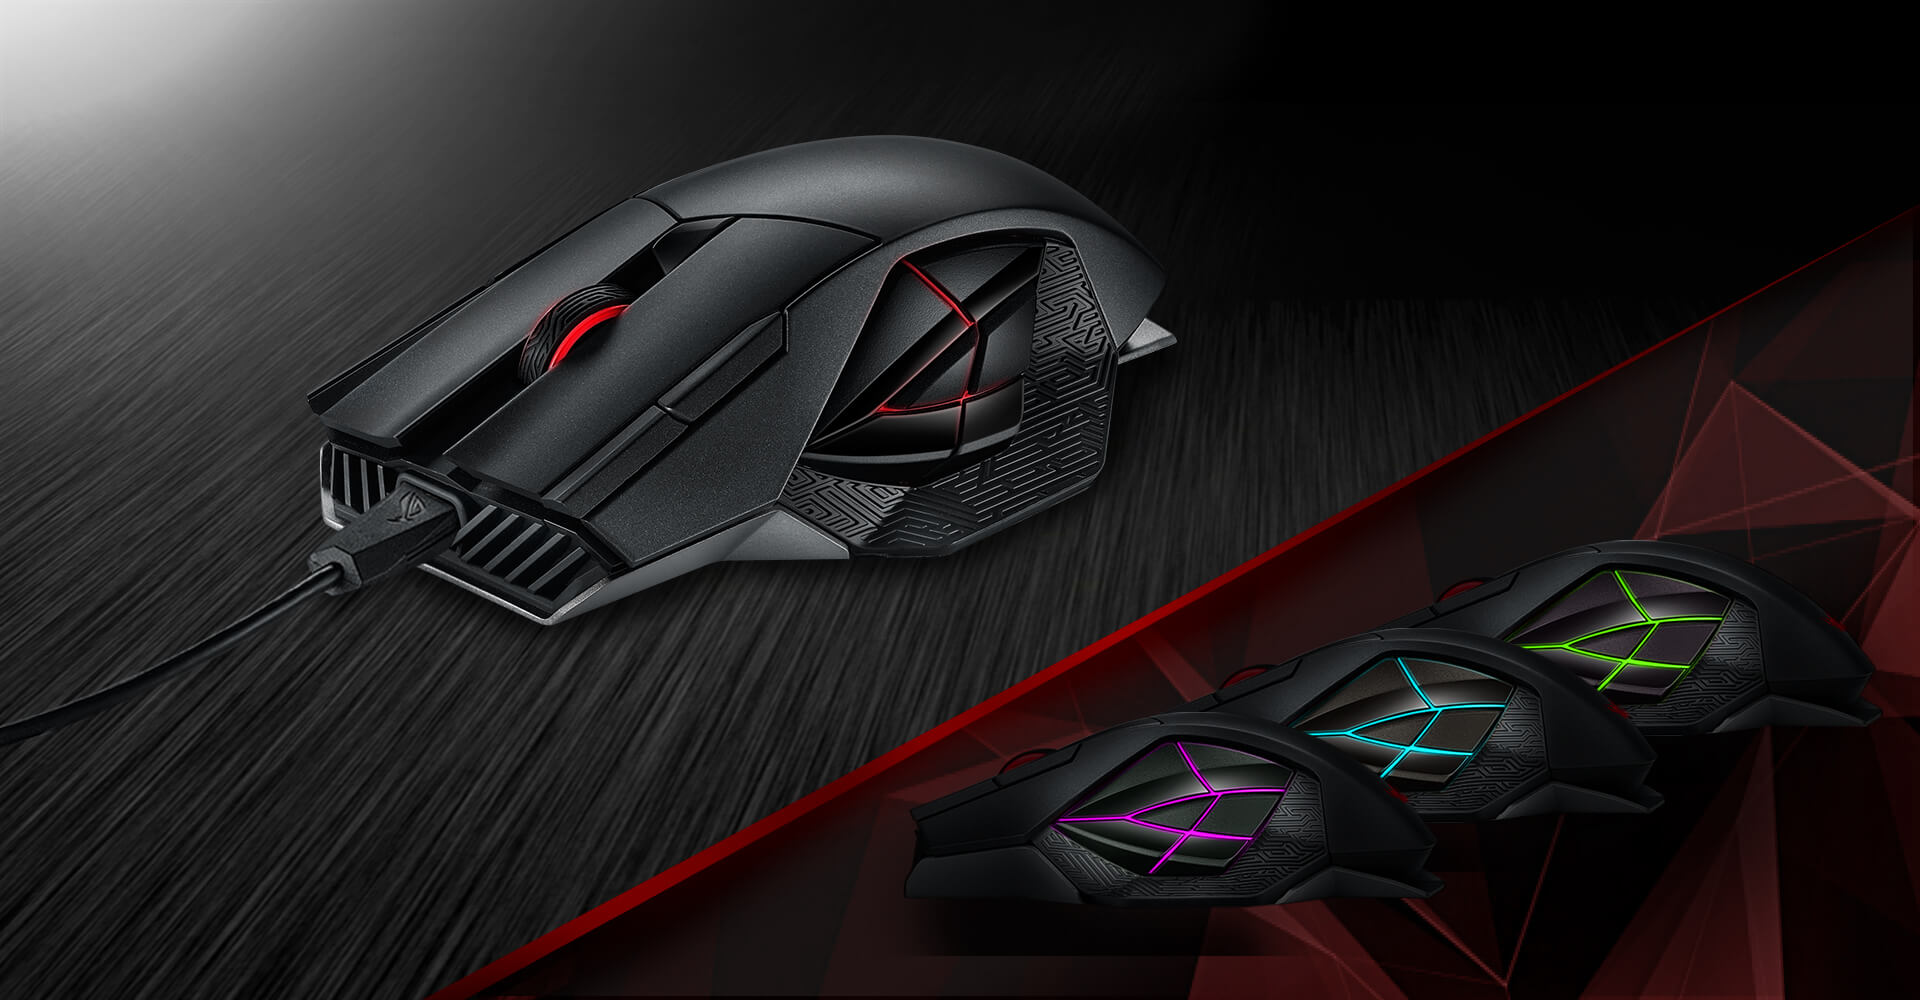 Asus-ROG-Spatha Best Gaming Mouse – Buyer's Guide